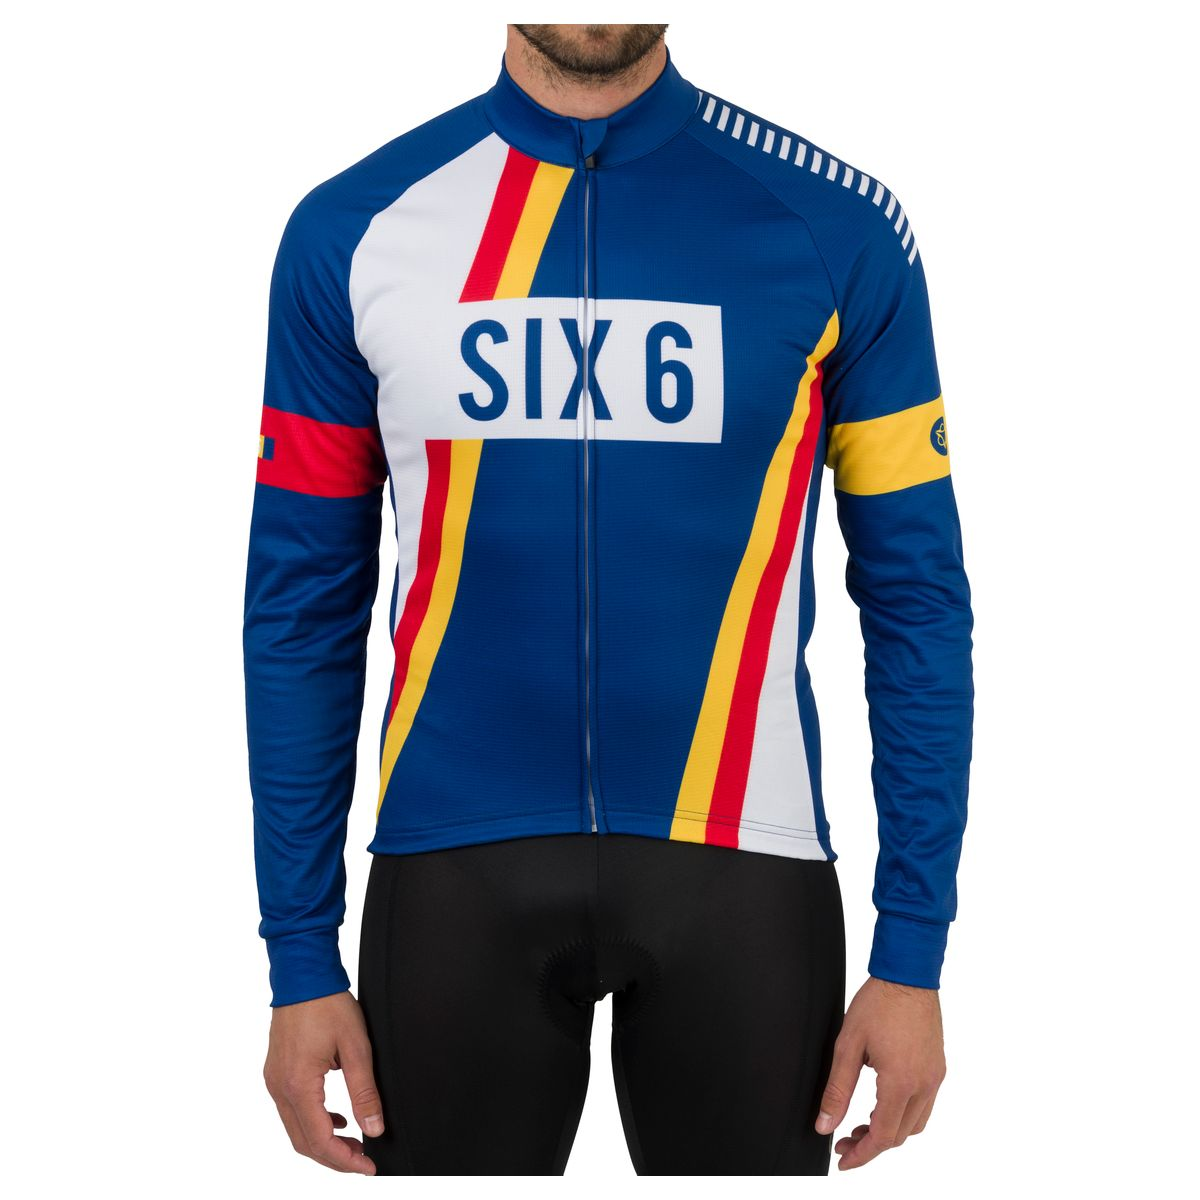 PNSC Fietsshirt Lange Mouwen Six6 Heren fit example